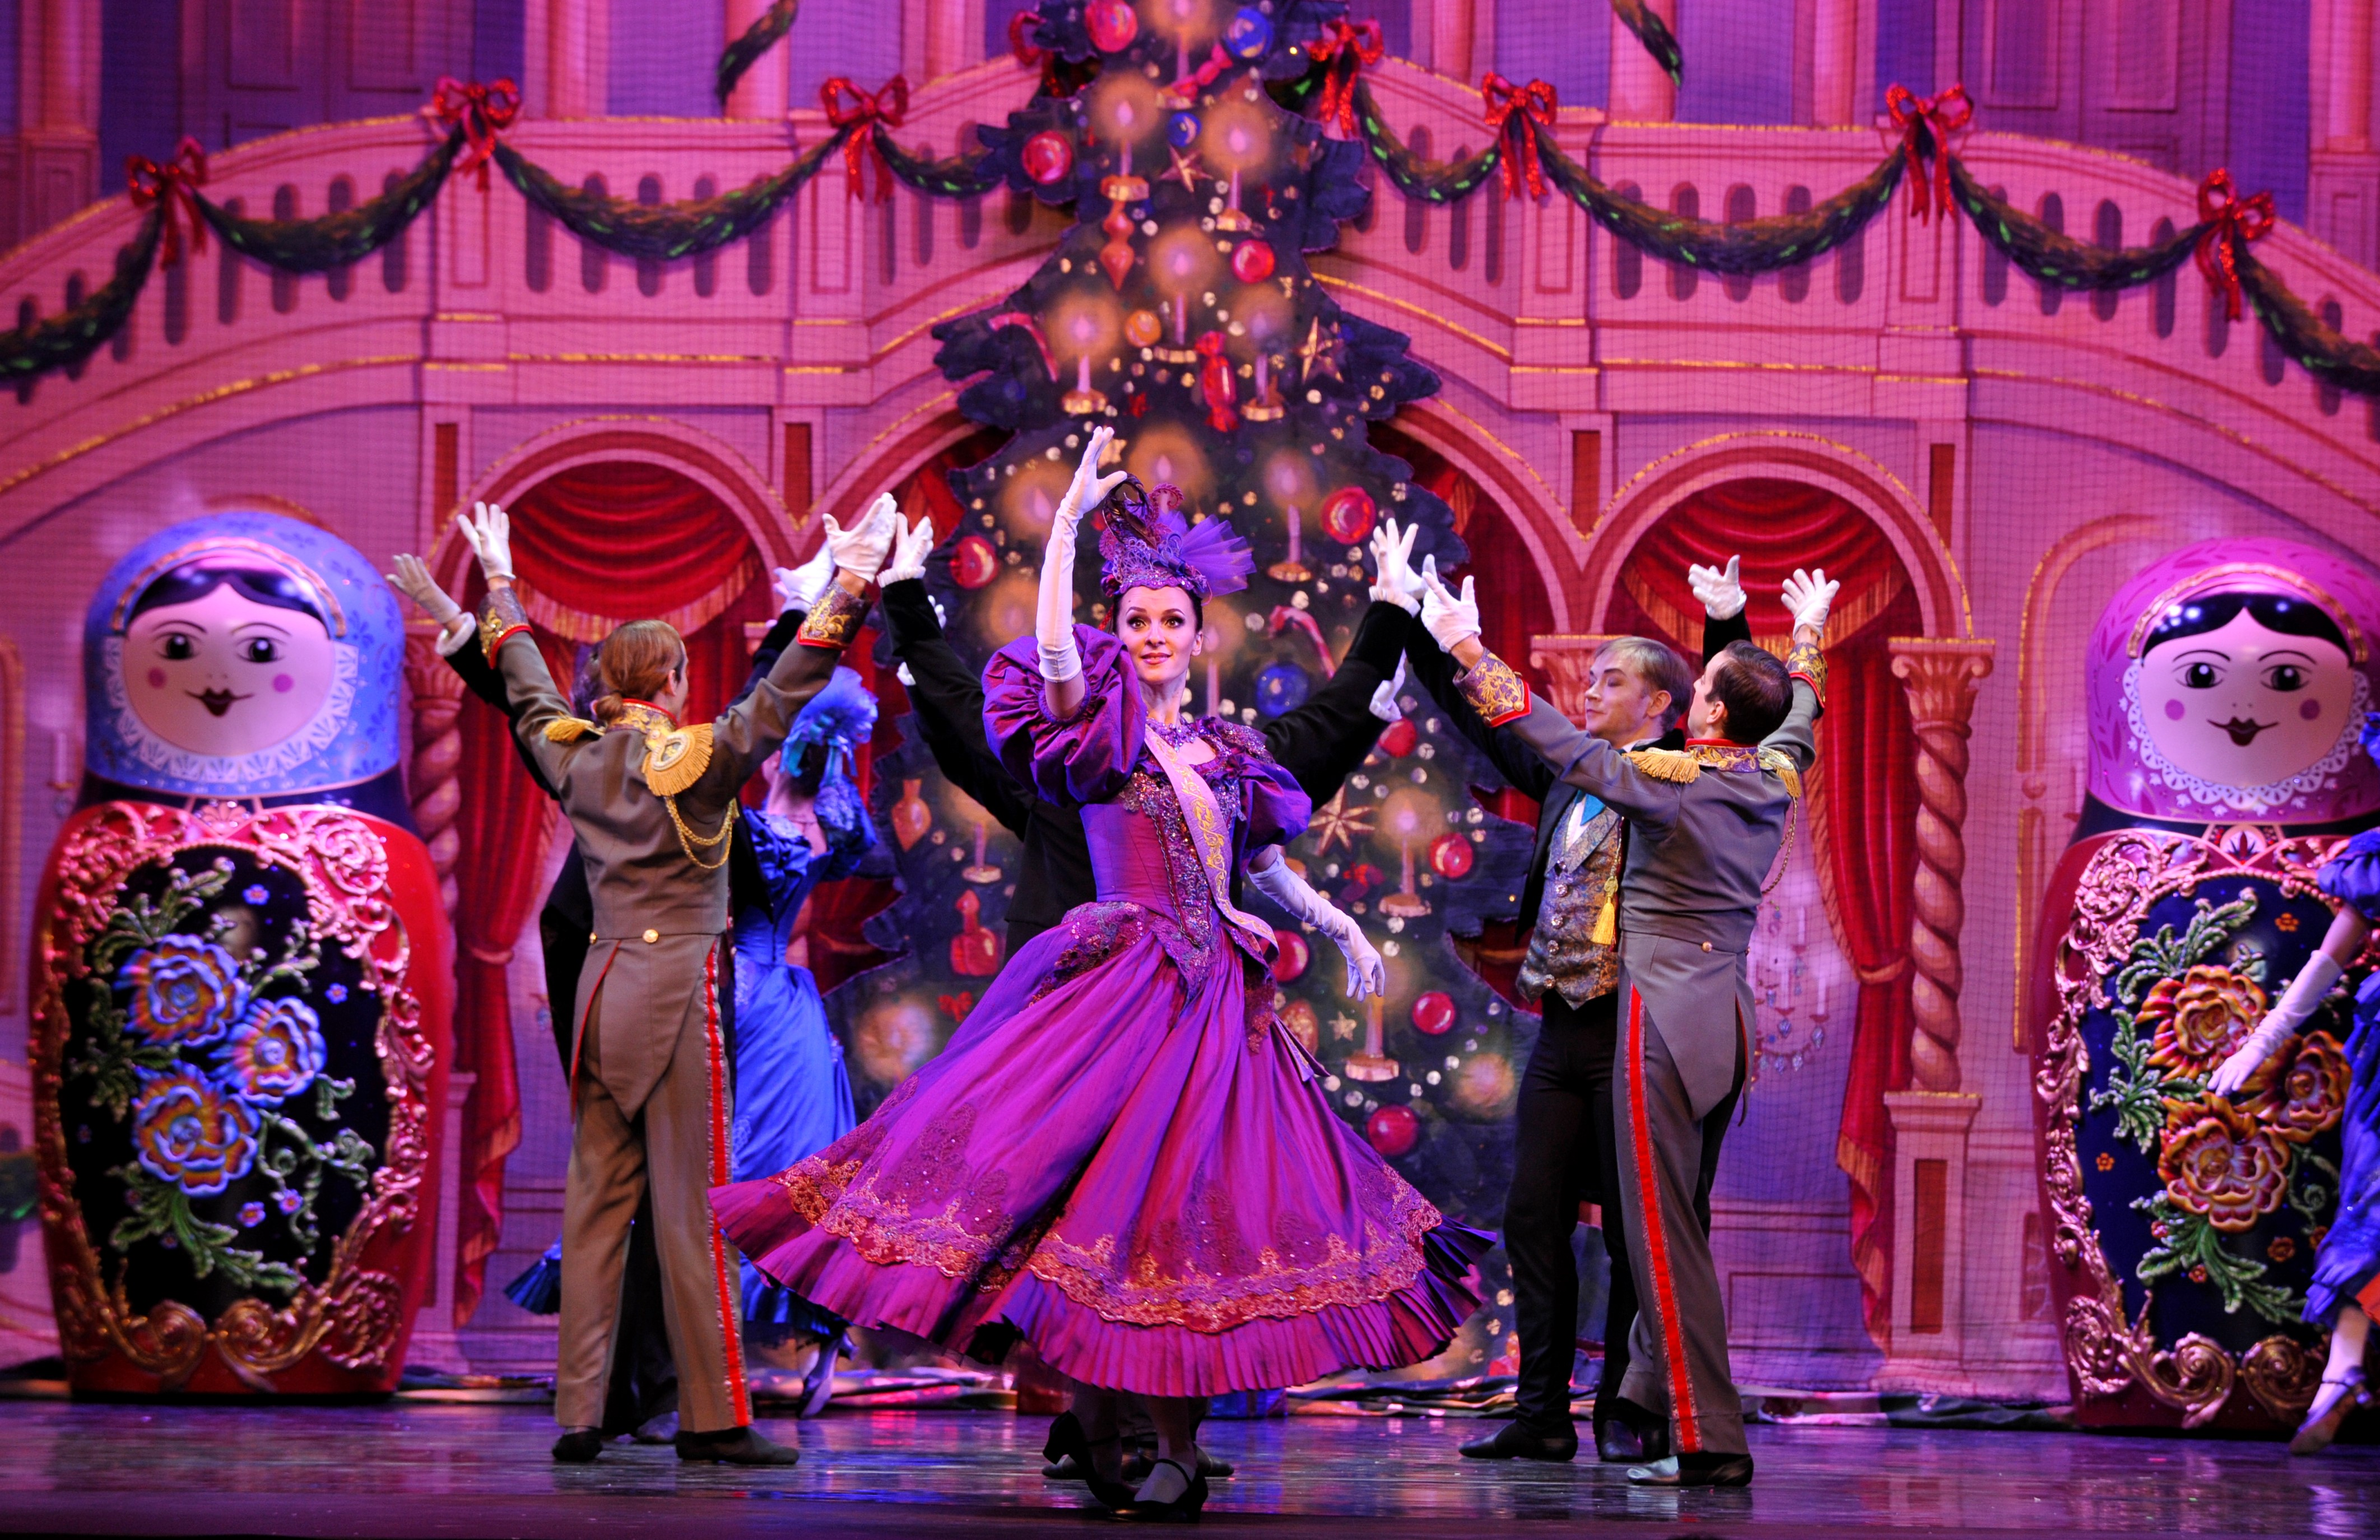 Partying with Nesting Dolls in Moscow Ballet's Great Russian Nutcracker